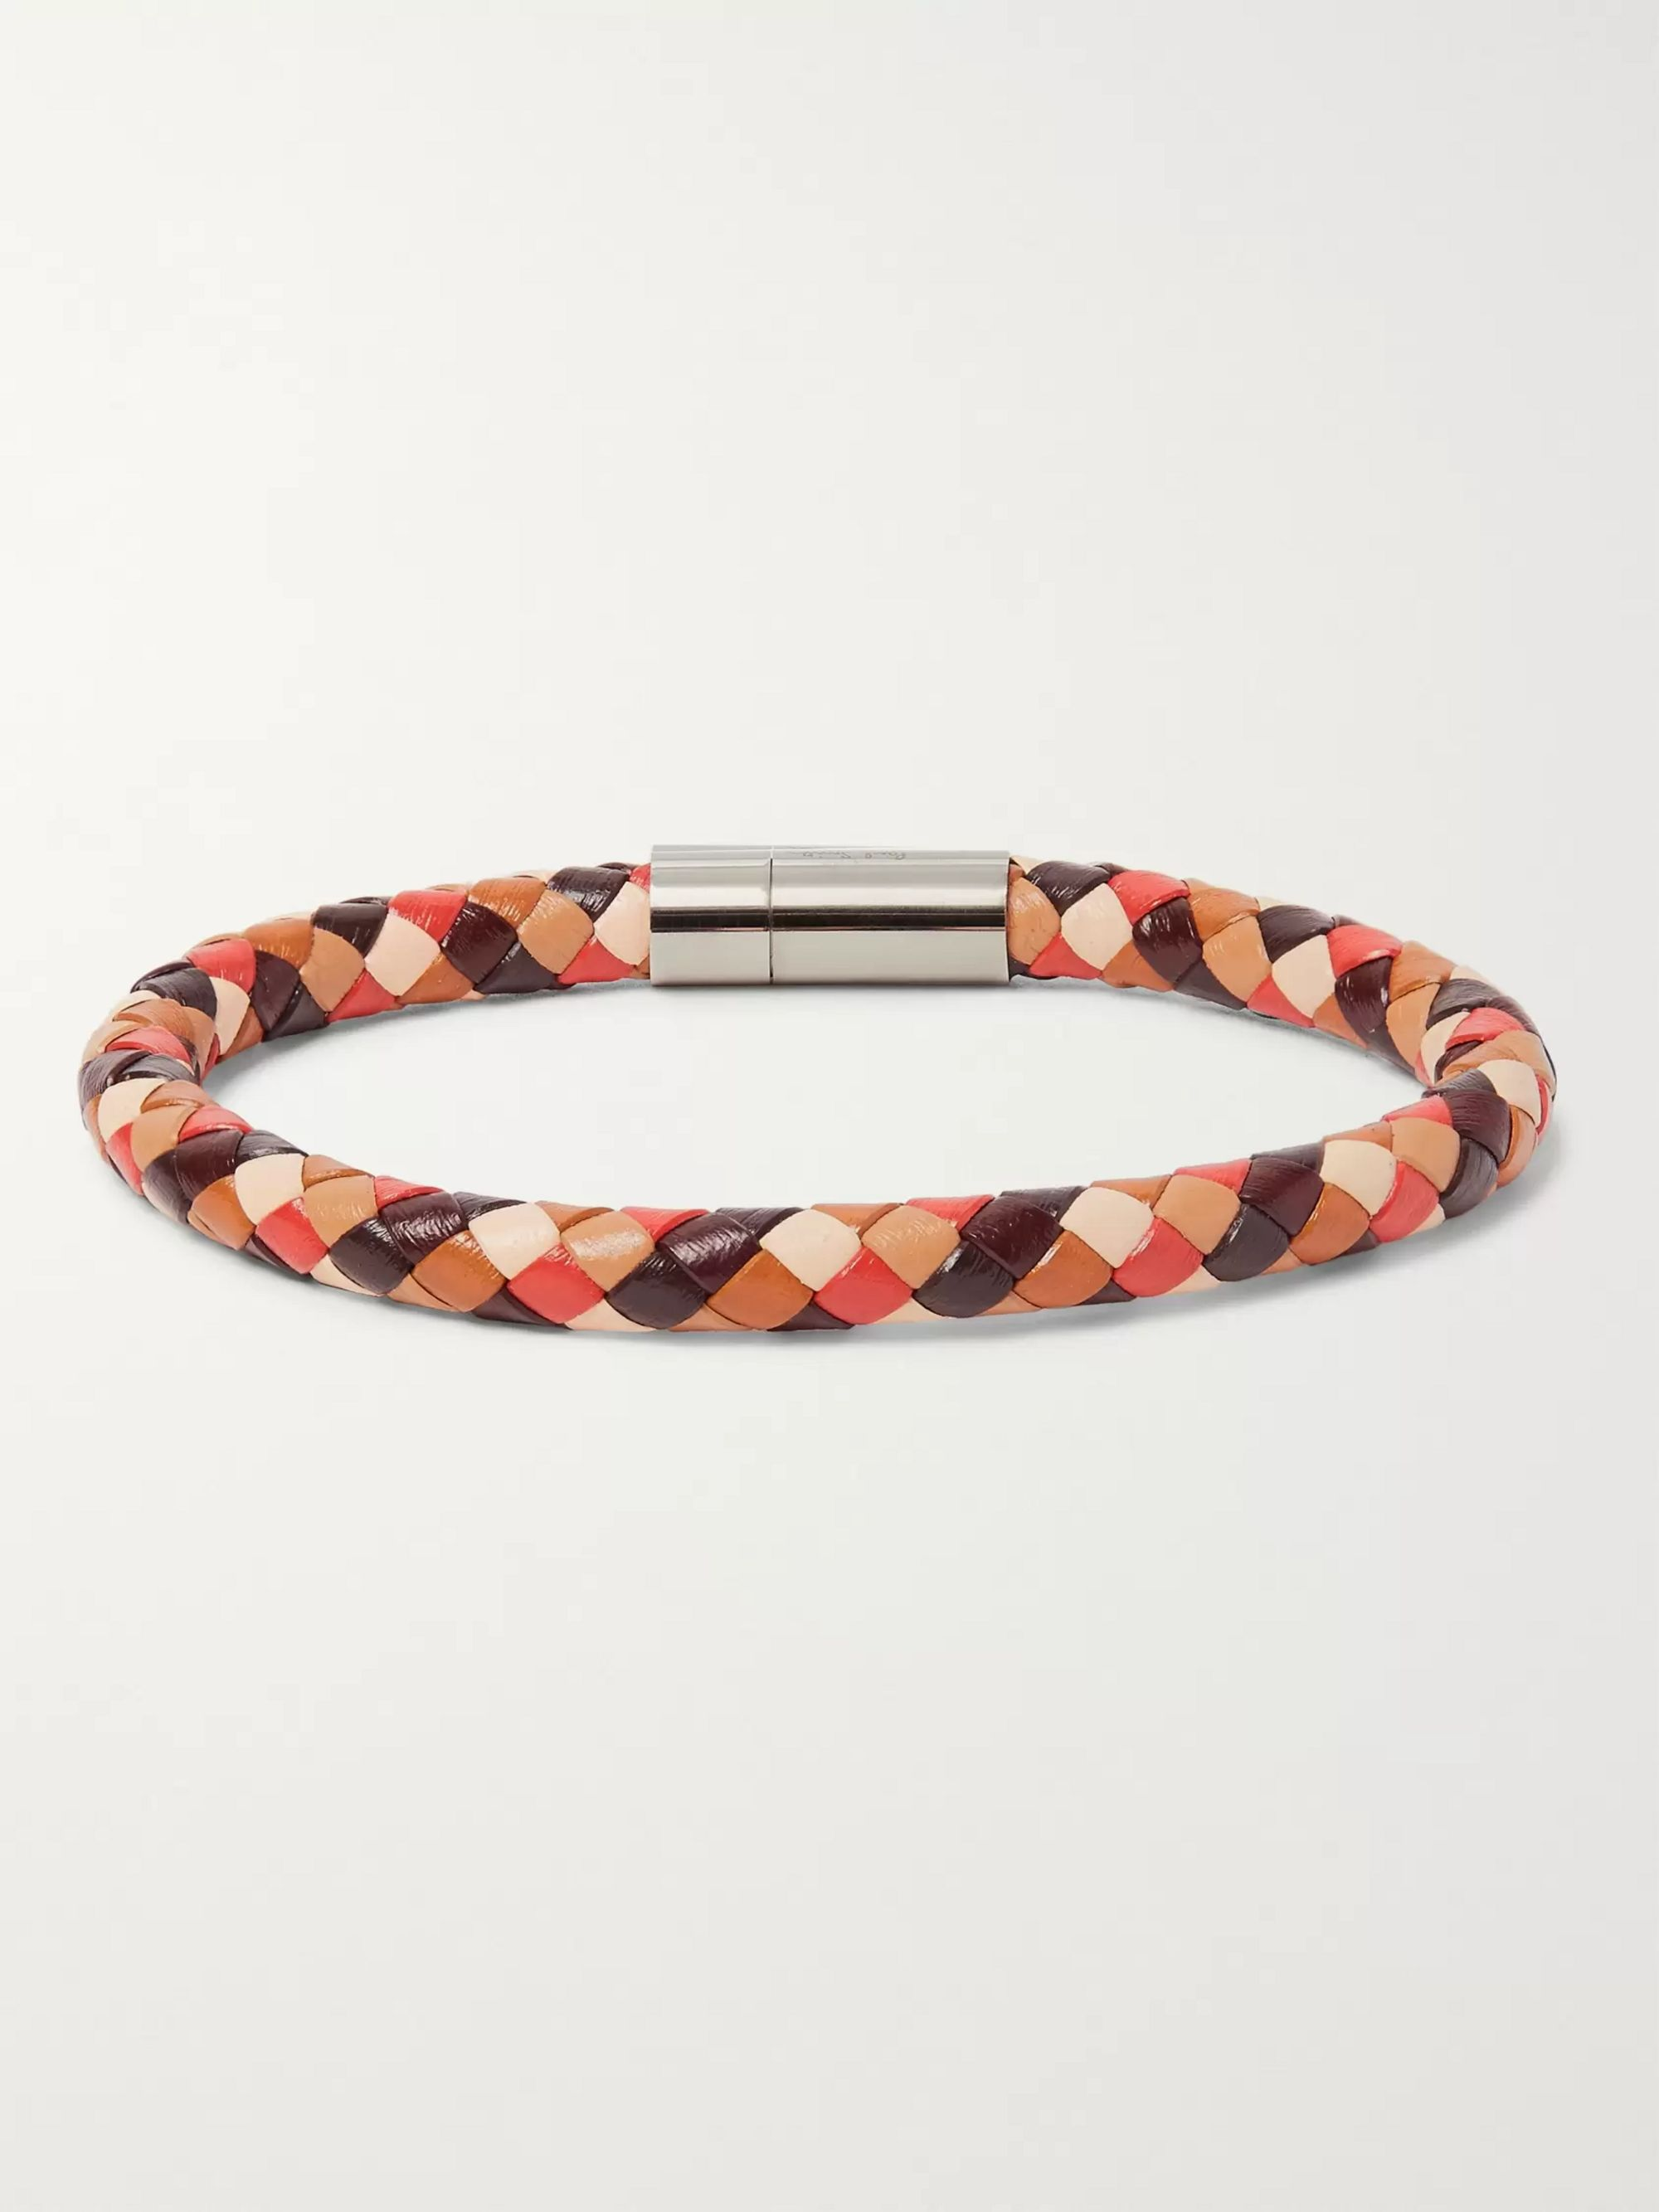 Paul Smith Woven Leather and Silver-Tone Bracelet